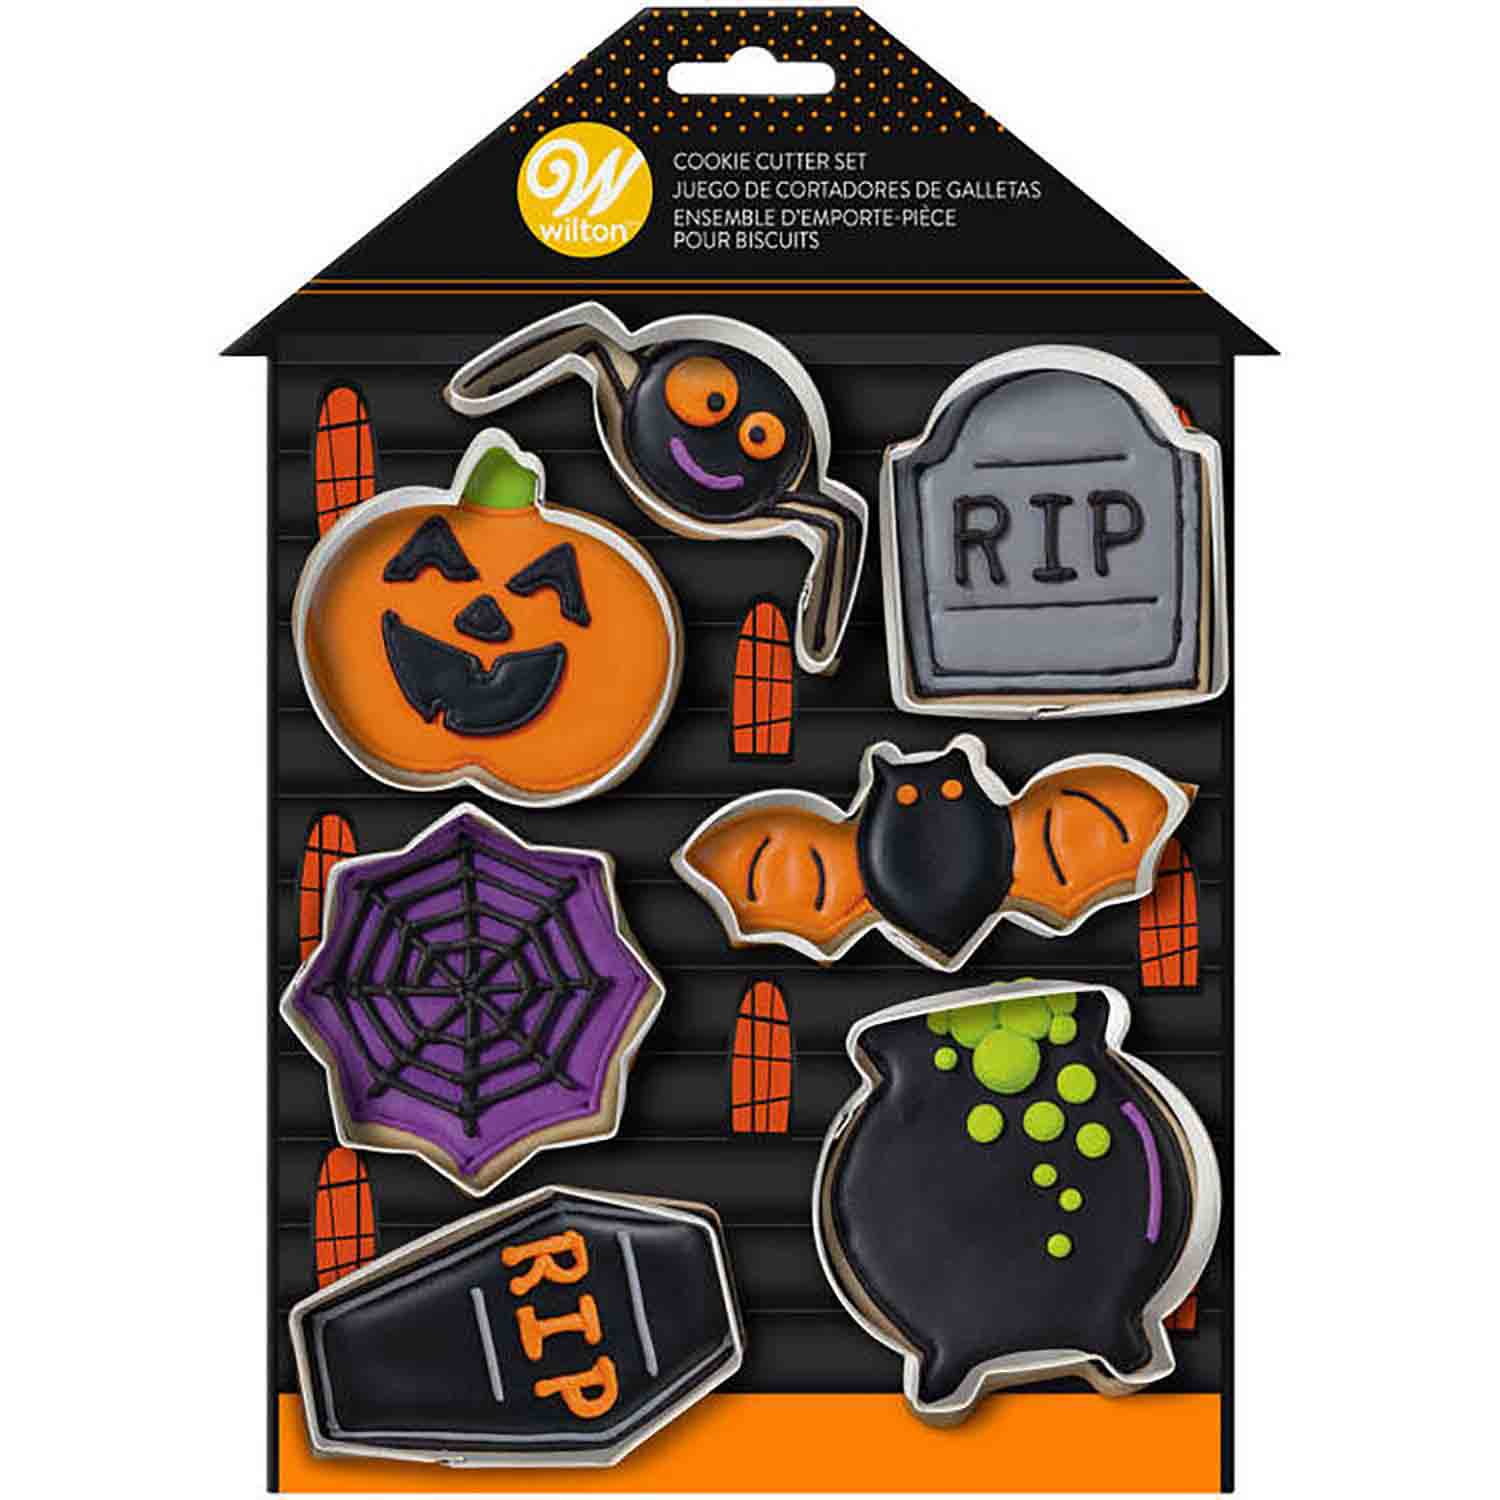 Haunted House Cookie Cutter Set